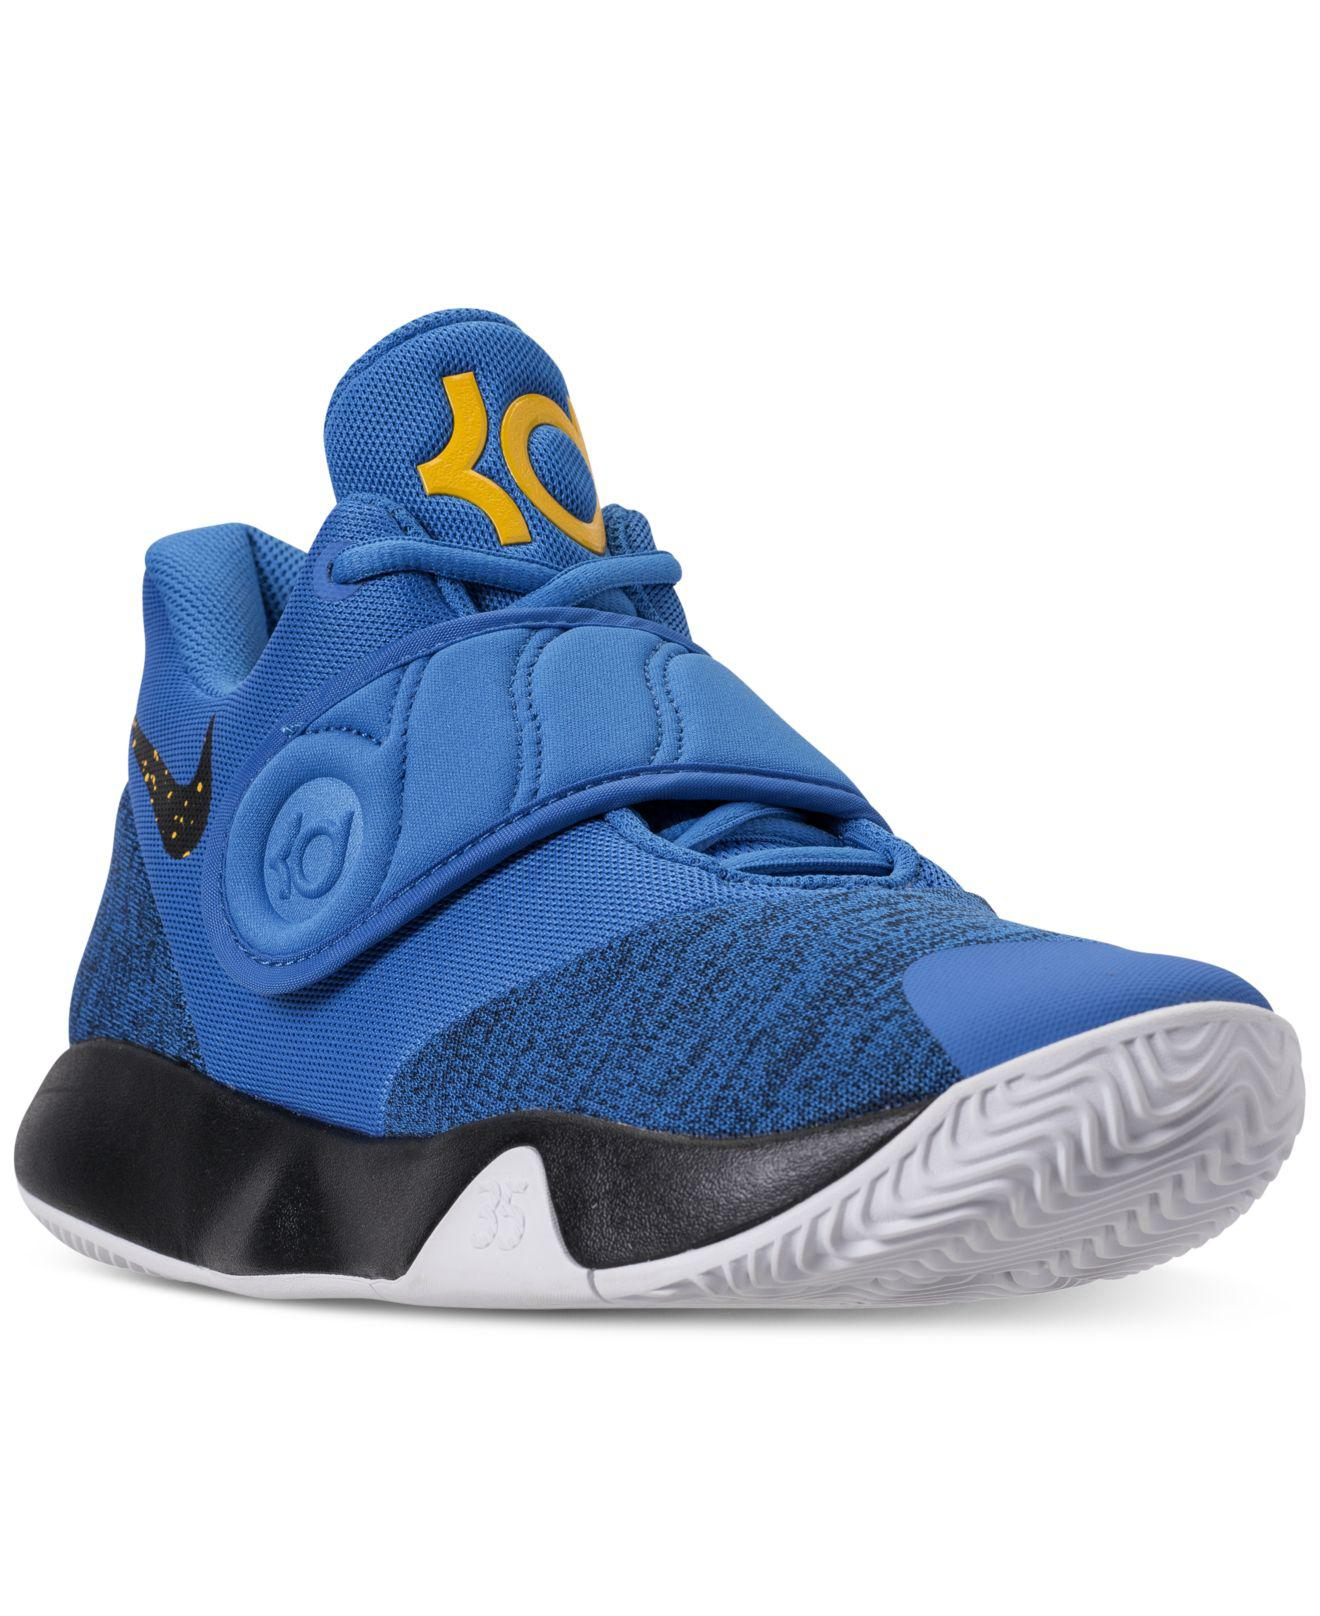 6da57ec094cc Lyst - Nike Kd Trey 5 Vi Basketball Sneakers From Finish Line in Blue